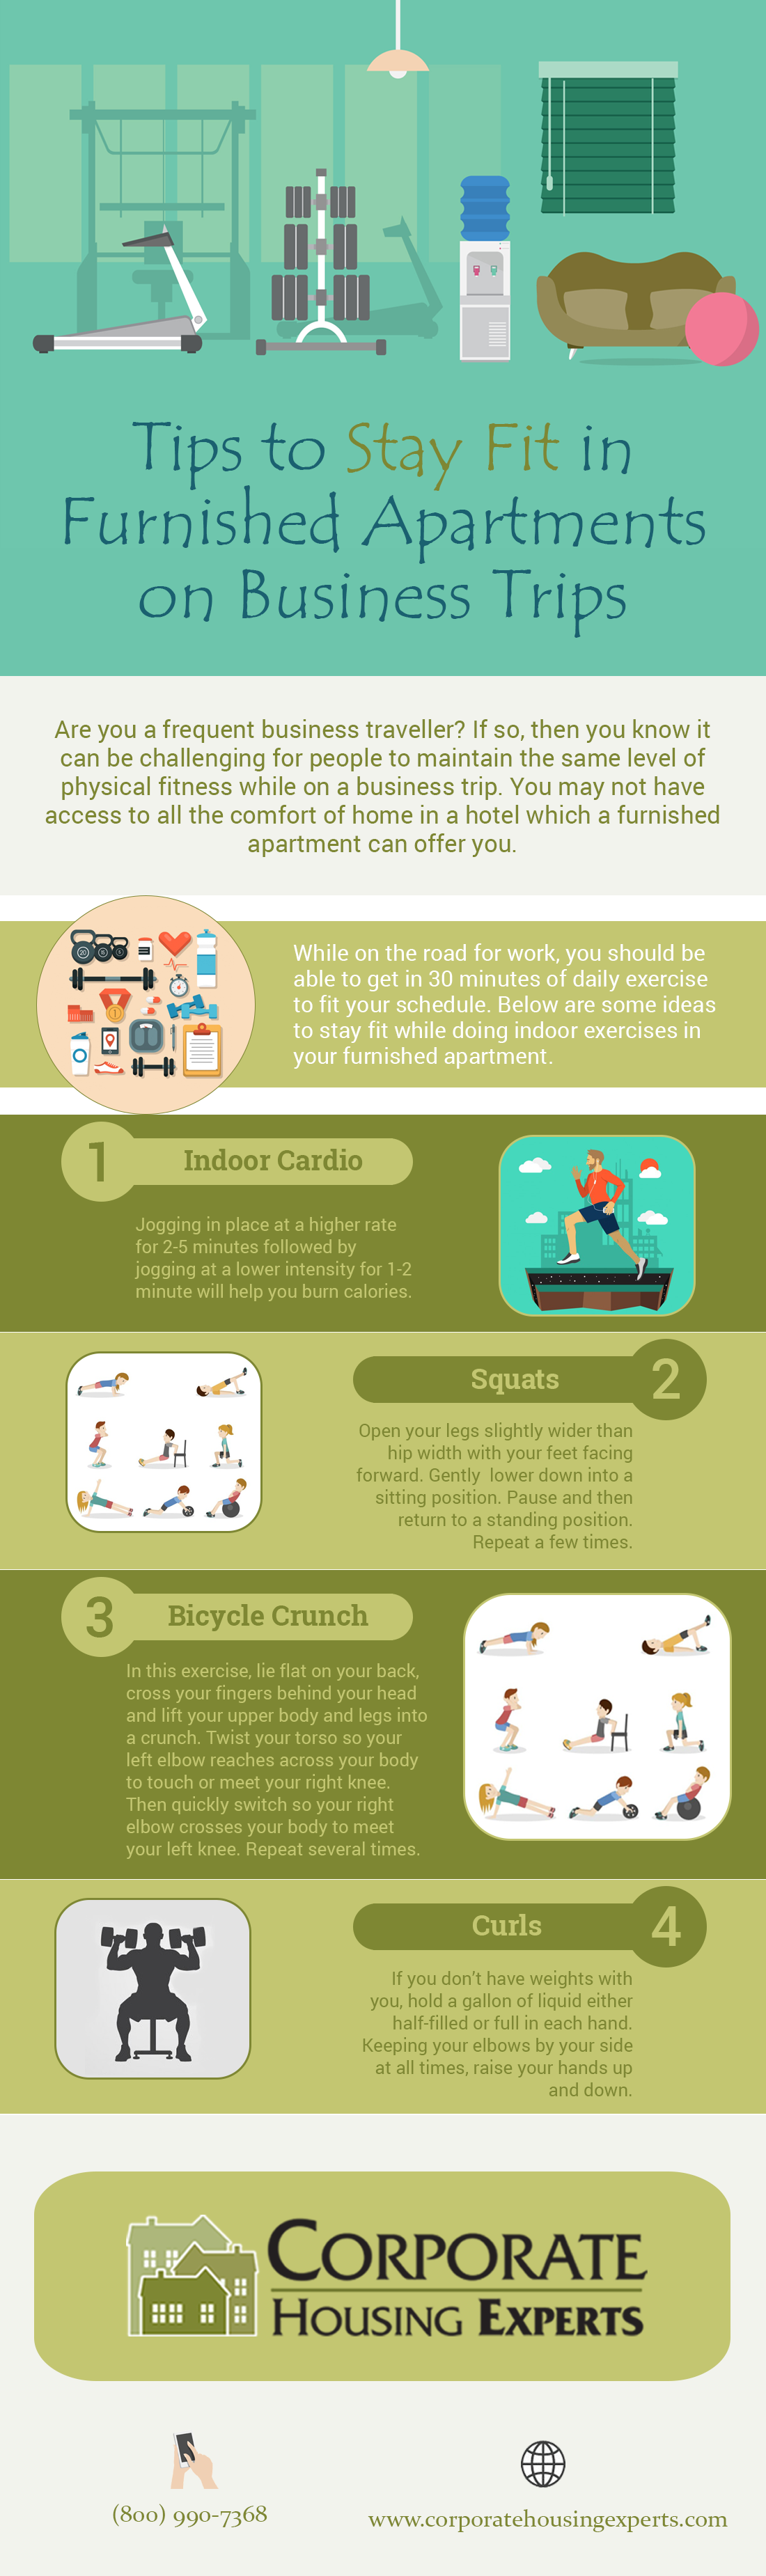 Tips to Stay Fit in Furnished Apartments